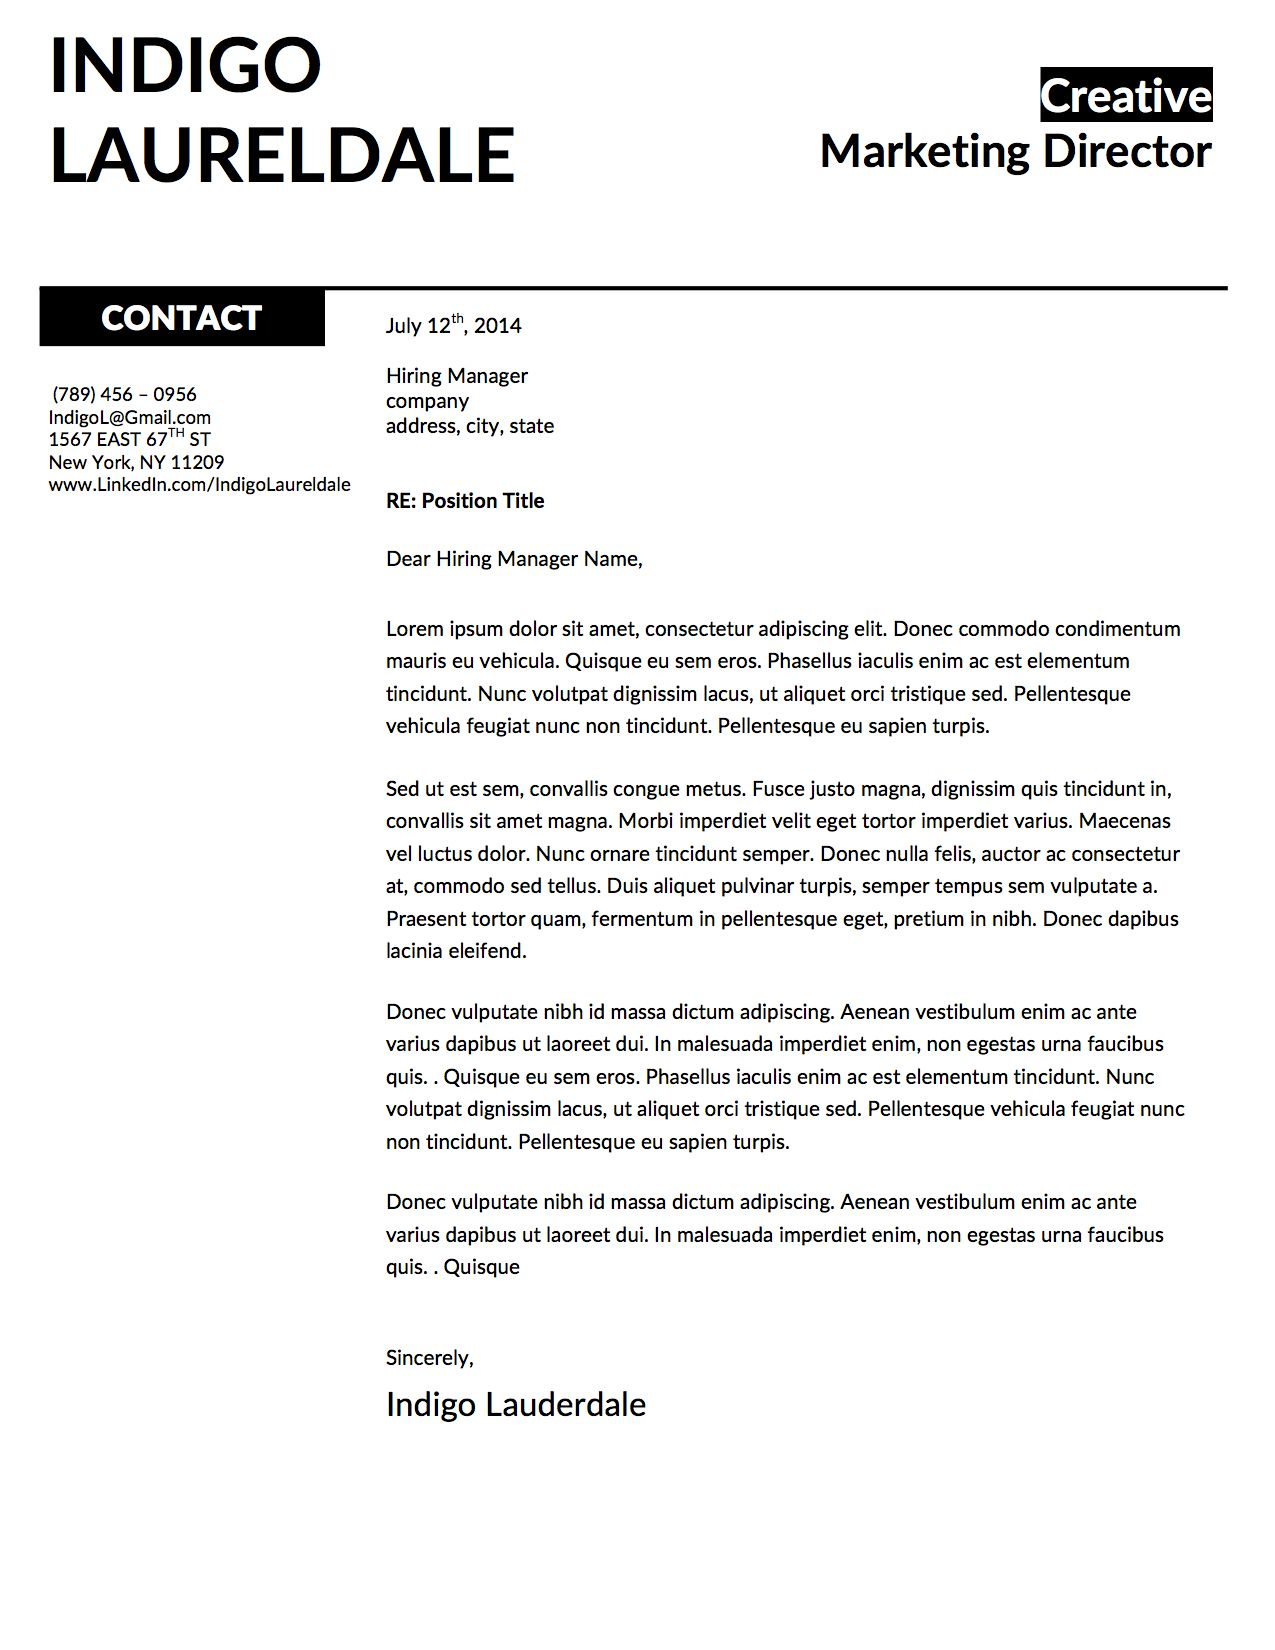 INDIGO Lauderdale Cover Letter Template For Microsoft Word